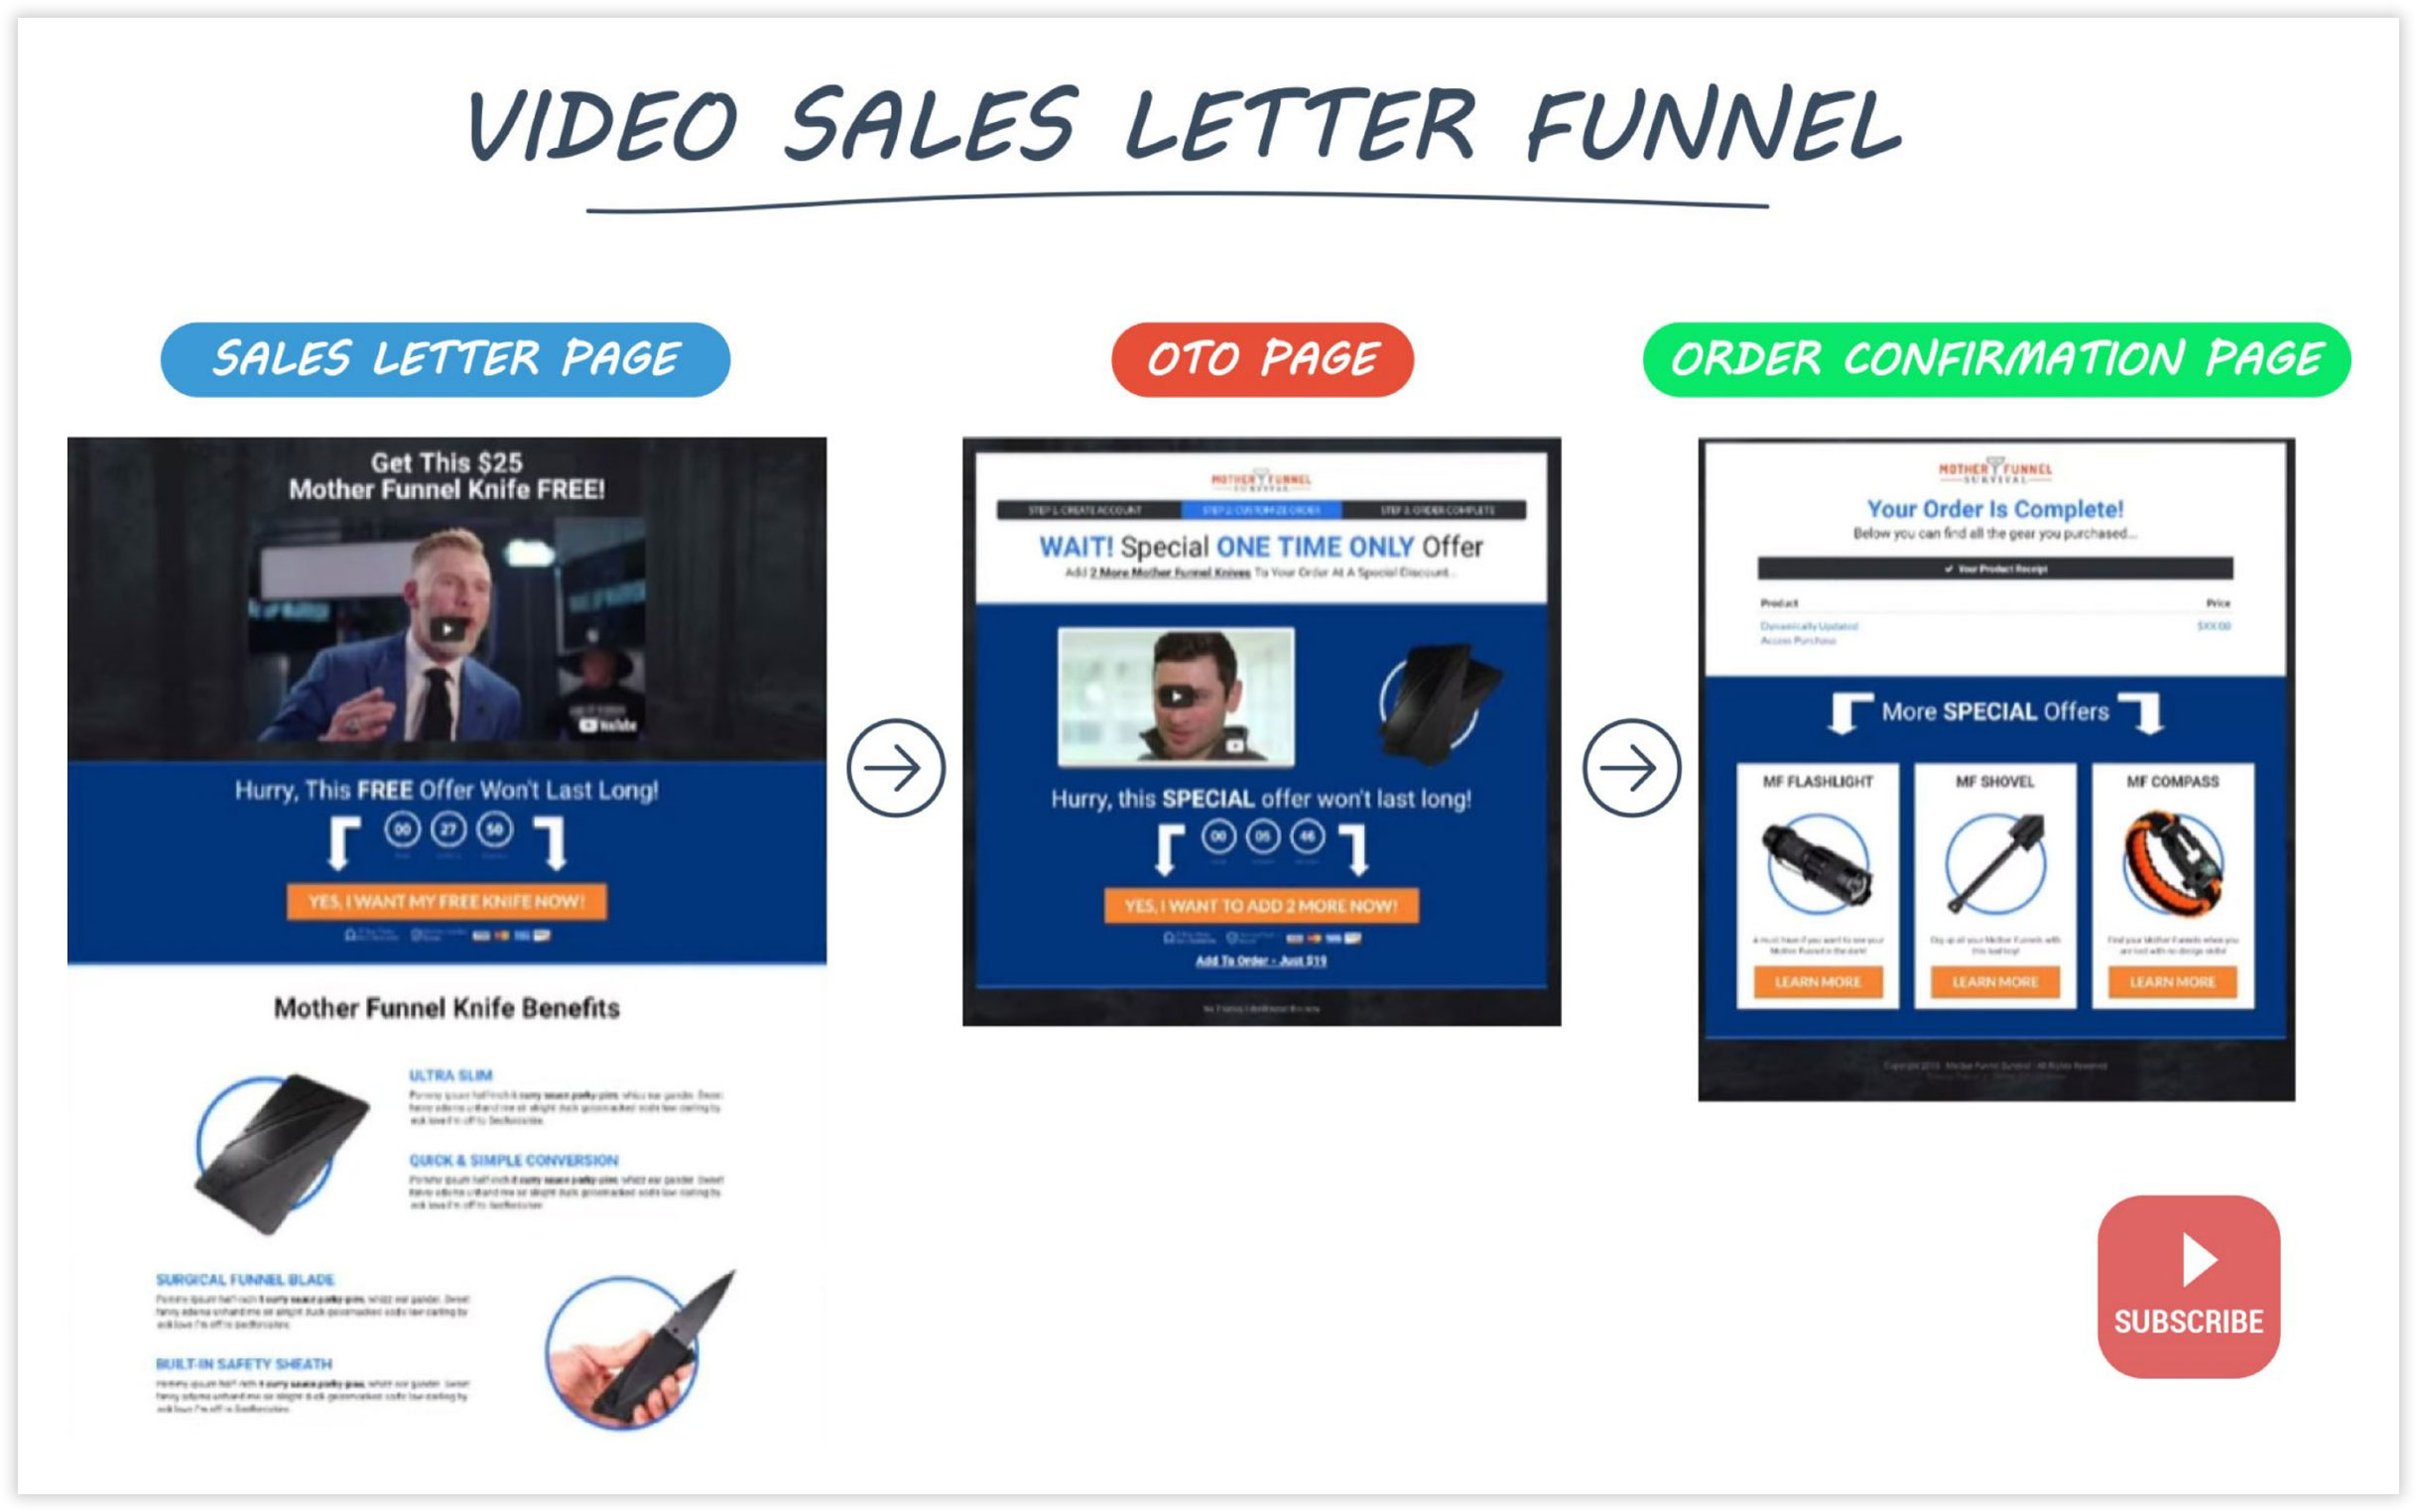 ClickFunnels Video Sales Letter Funnel